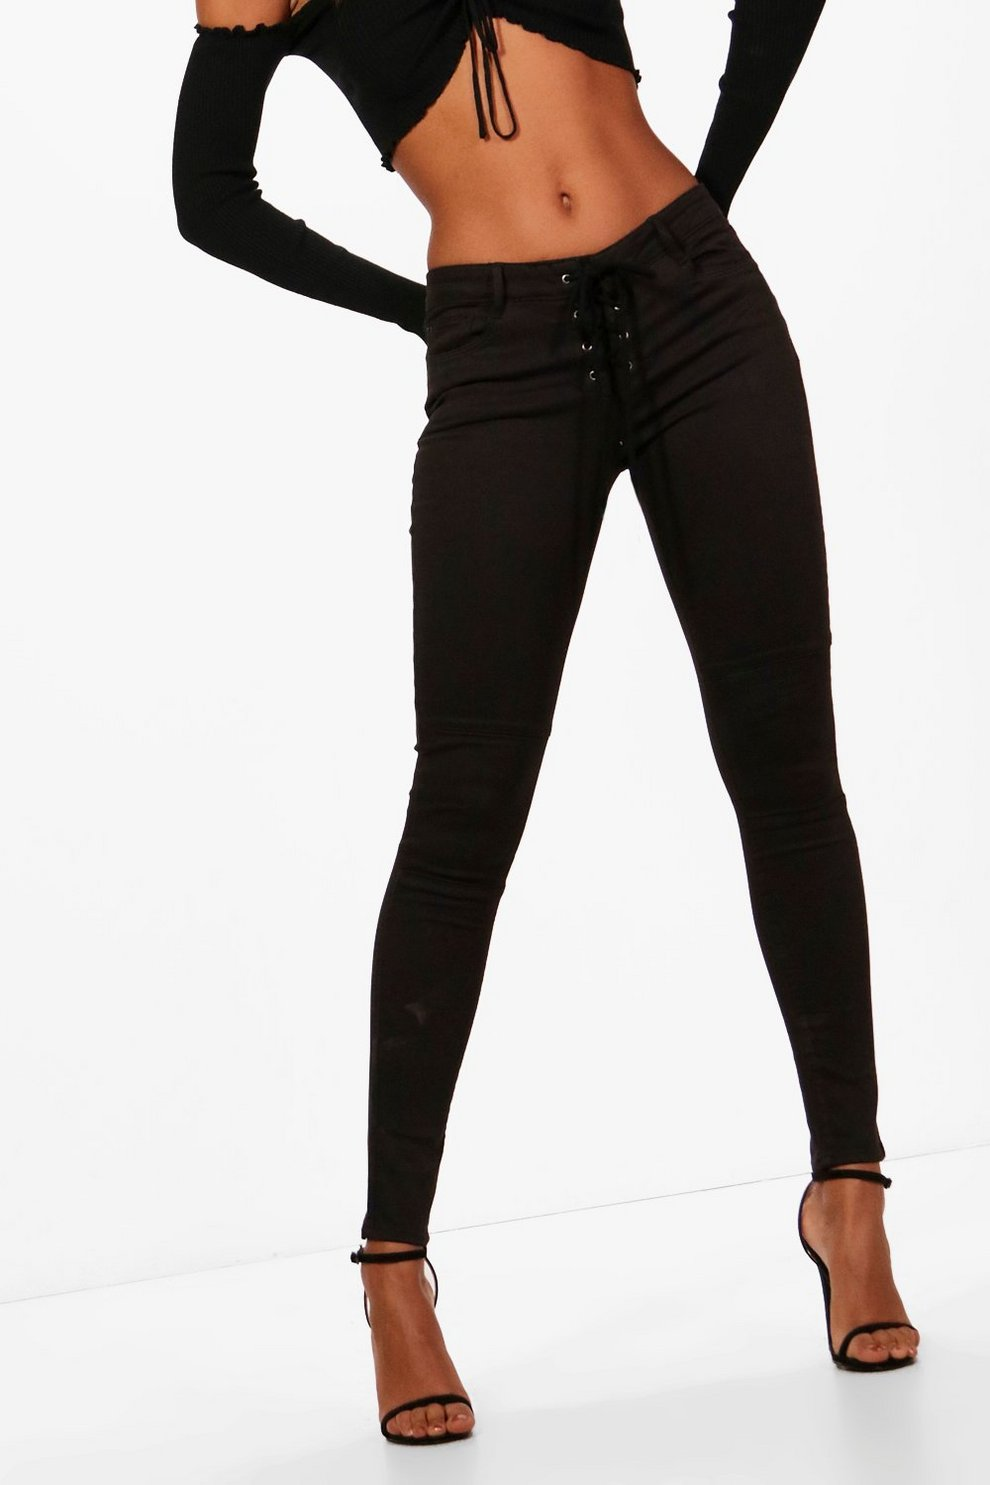 3e602fdf851 Jenna Low Rise Lace Up Front Skinny Jeans